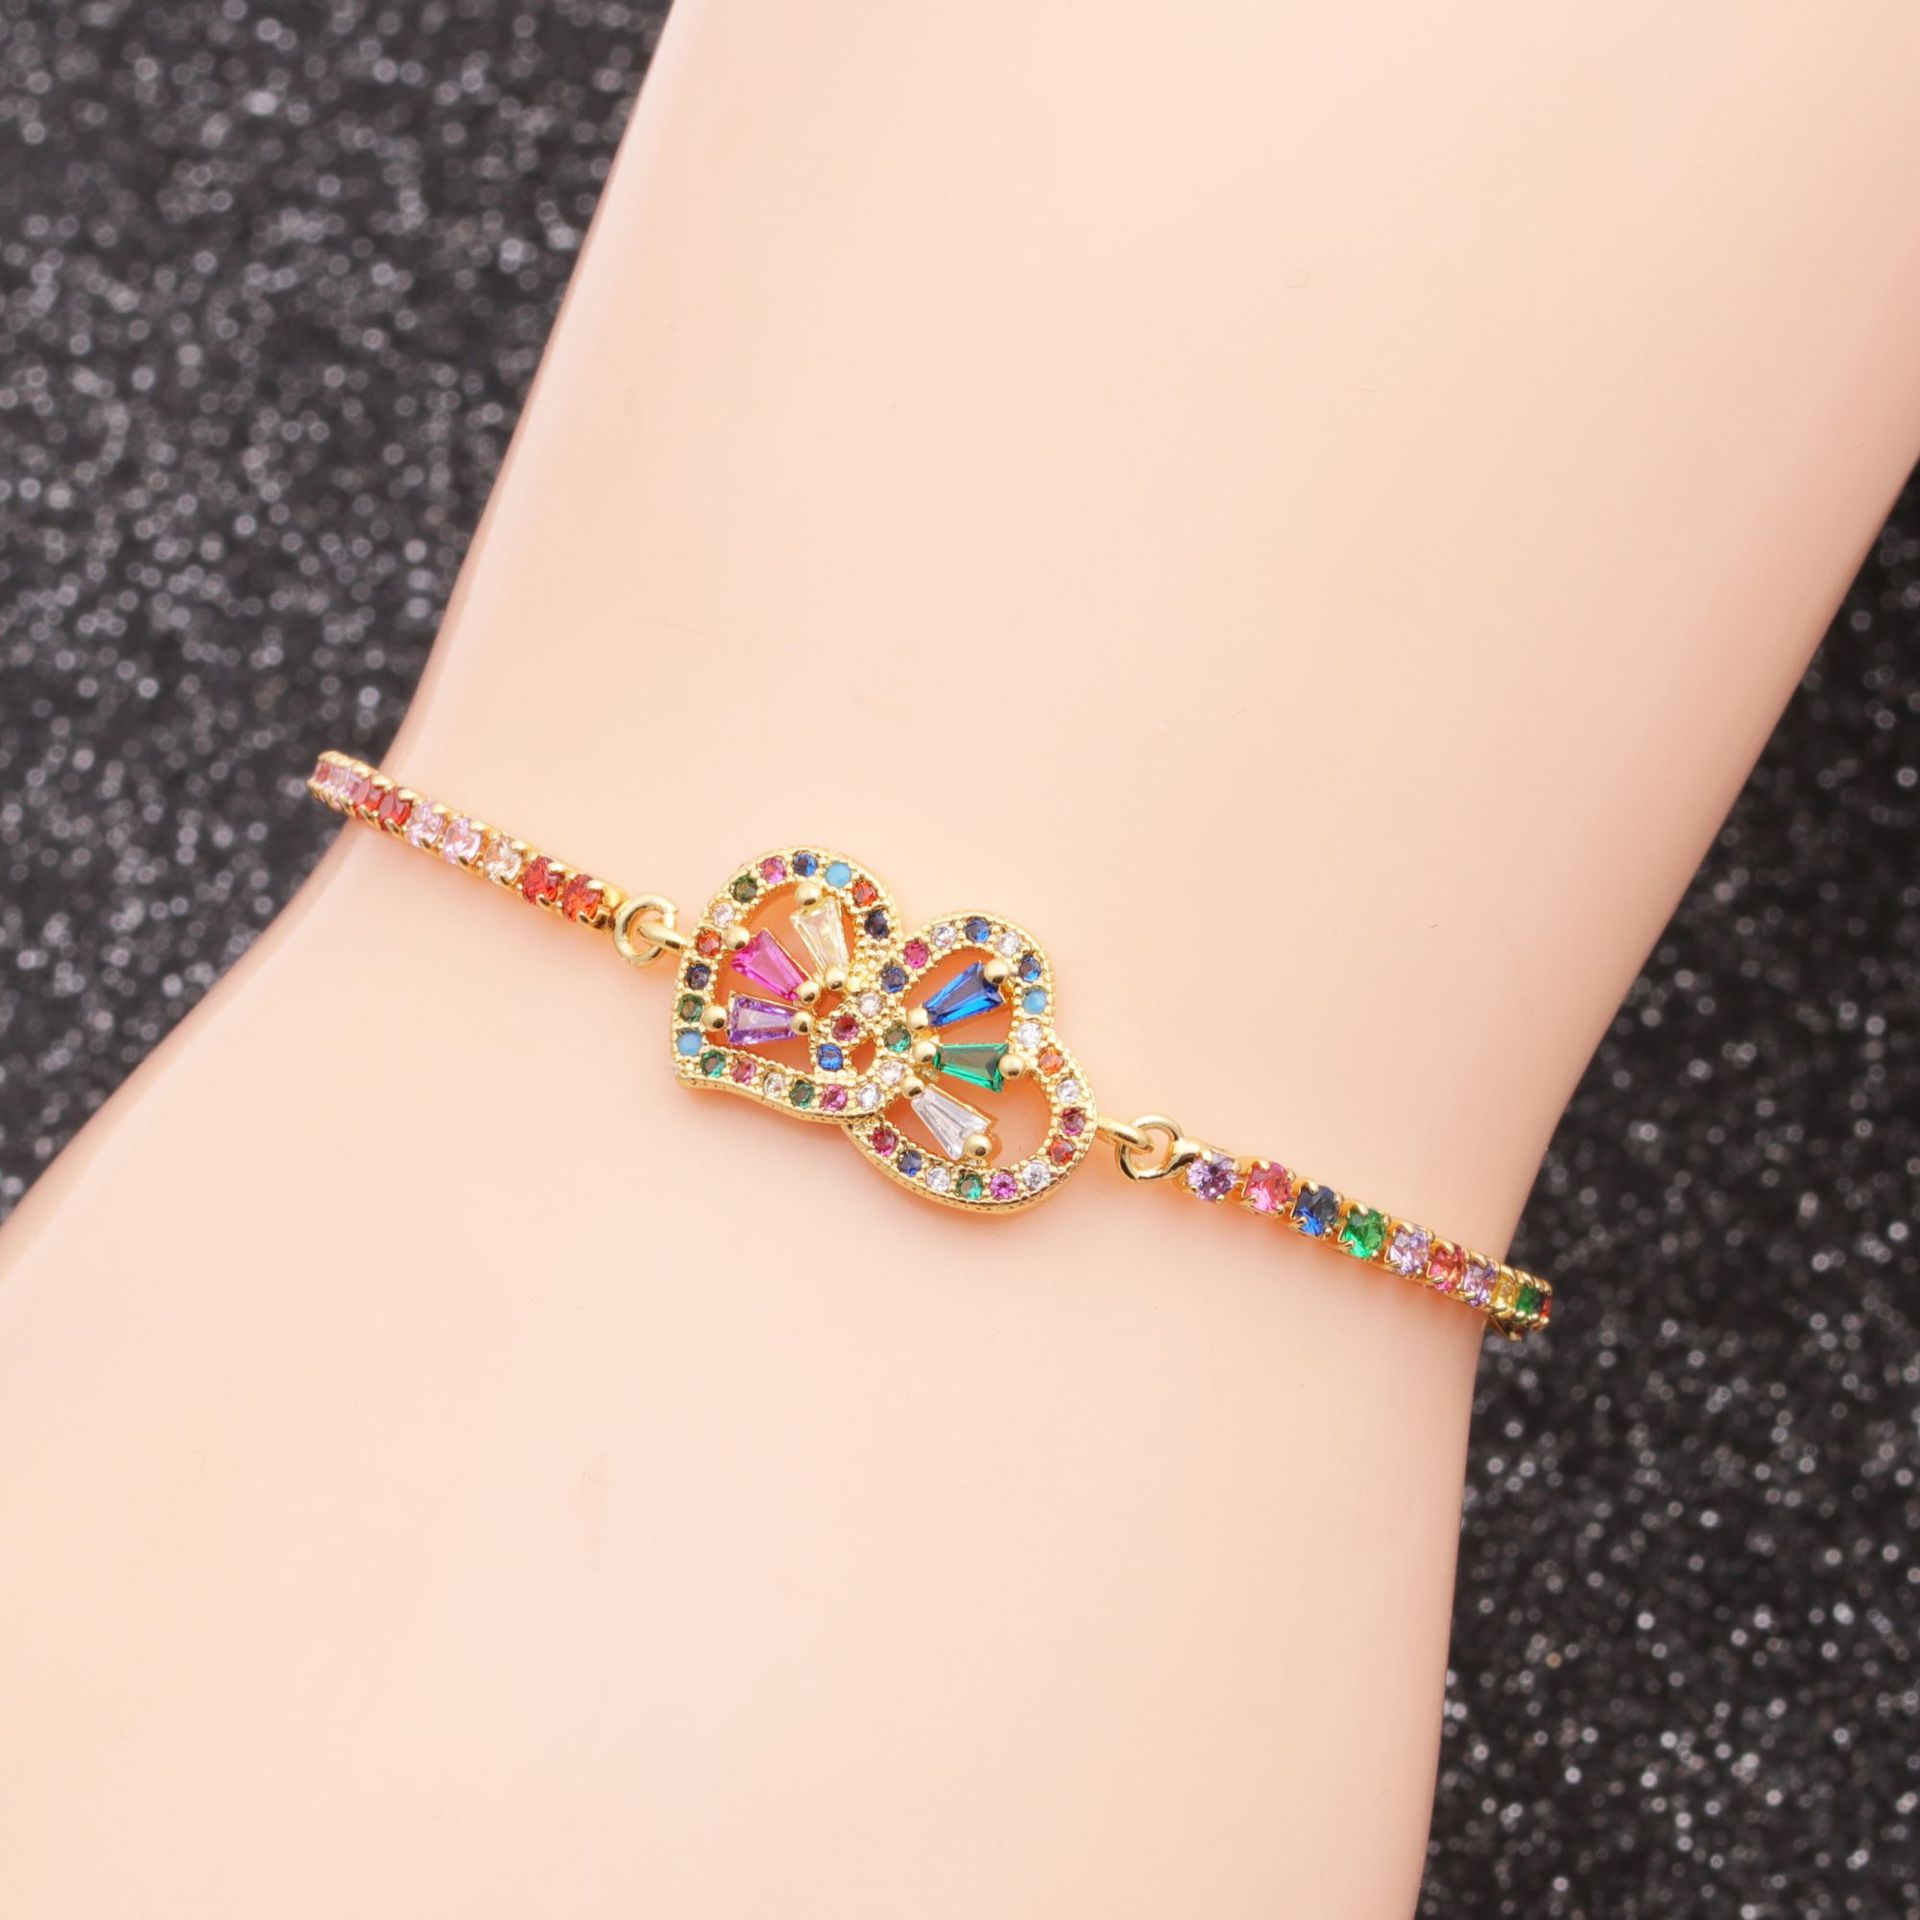 fashion jewelry copper micro inlay zirconium double love adjustable bracelet wholesale nihaojewelry NHYL232462